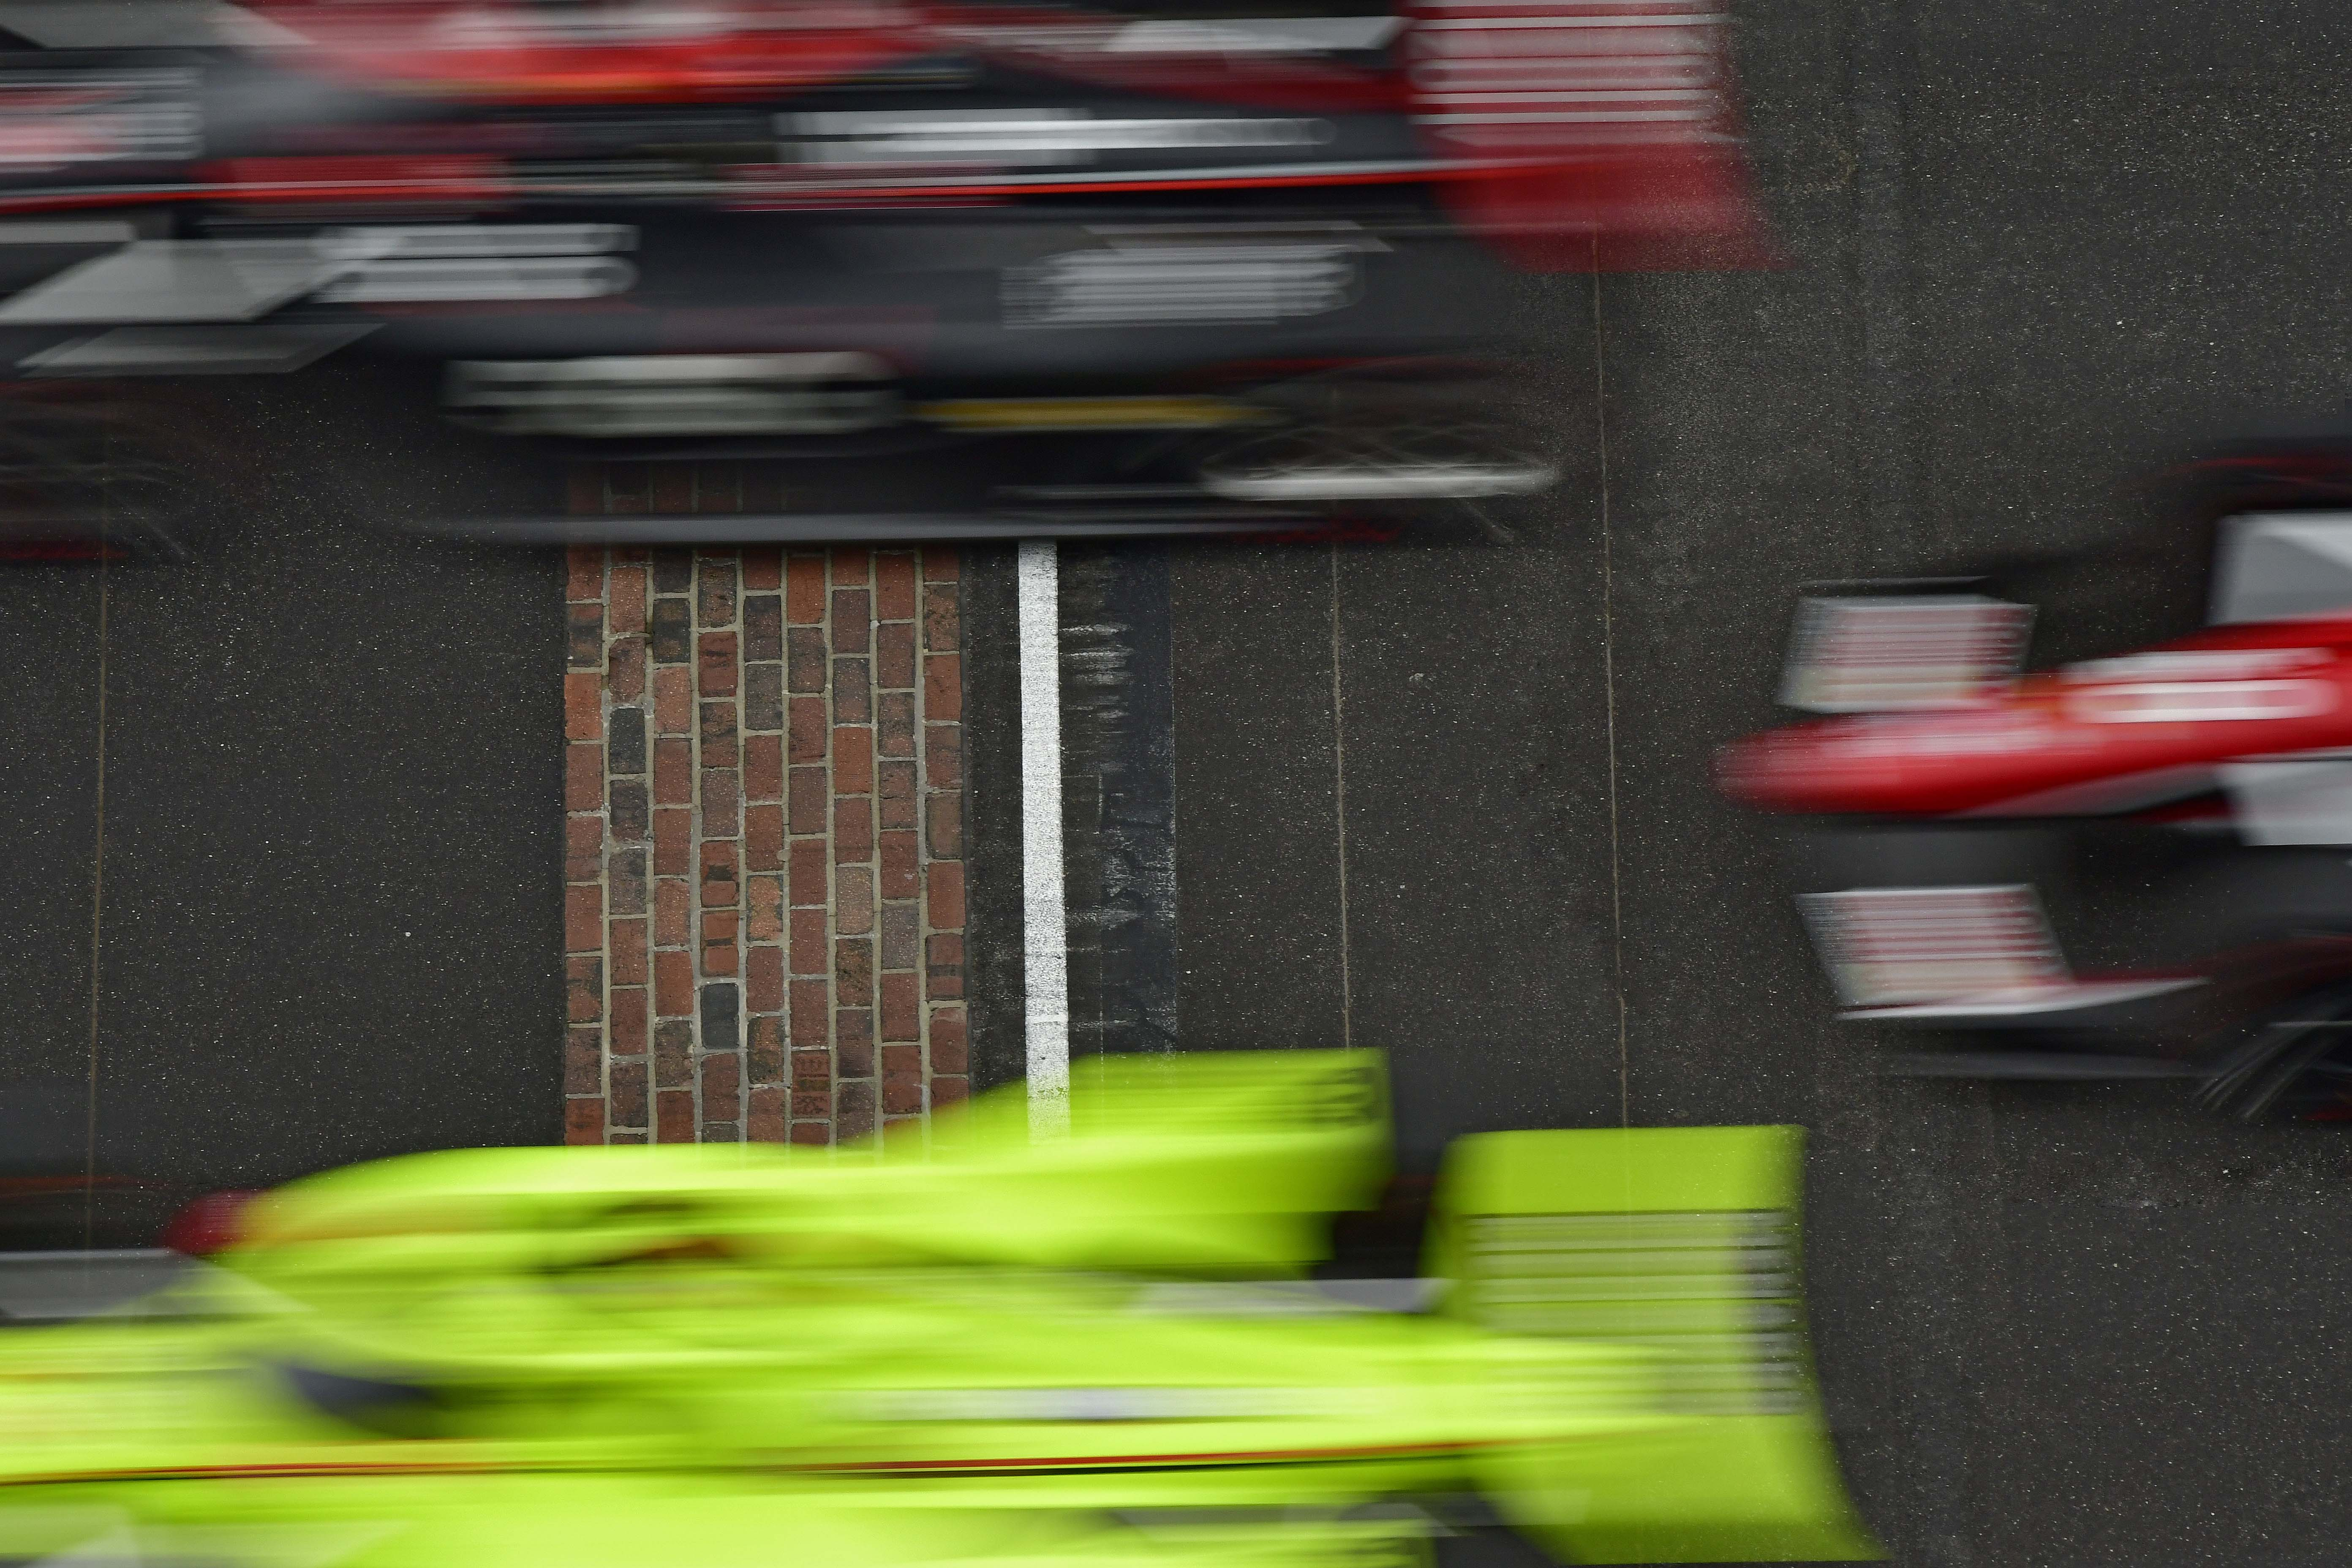 Motion Blur - Indy 500 - Indianapolis Motor Speedway - Indycar Series